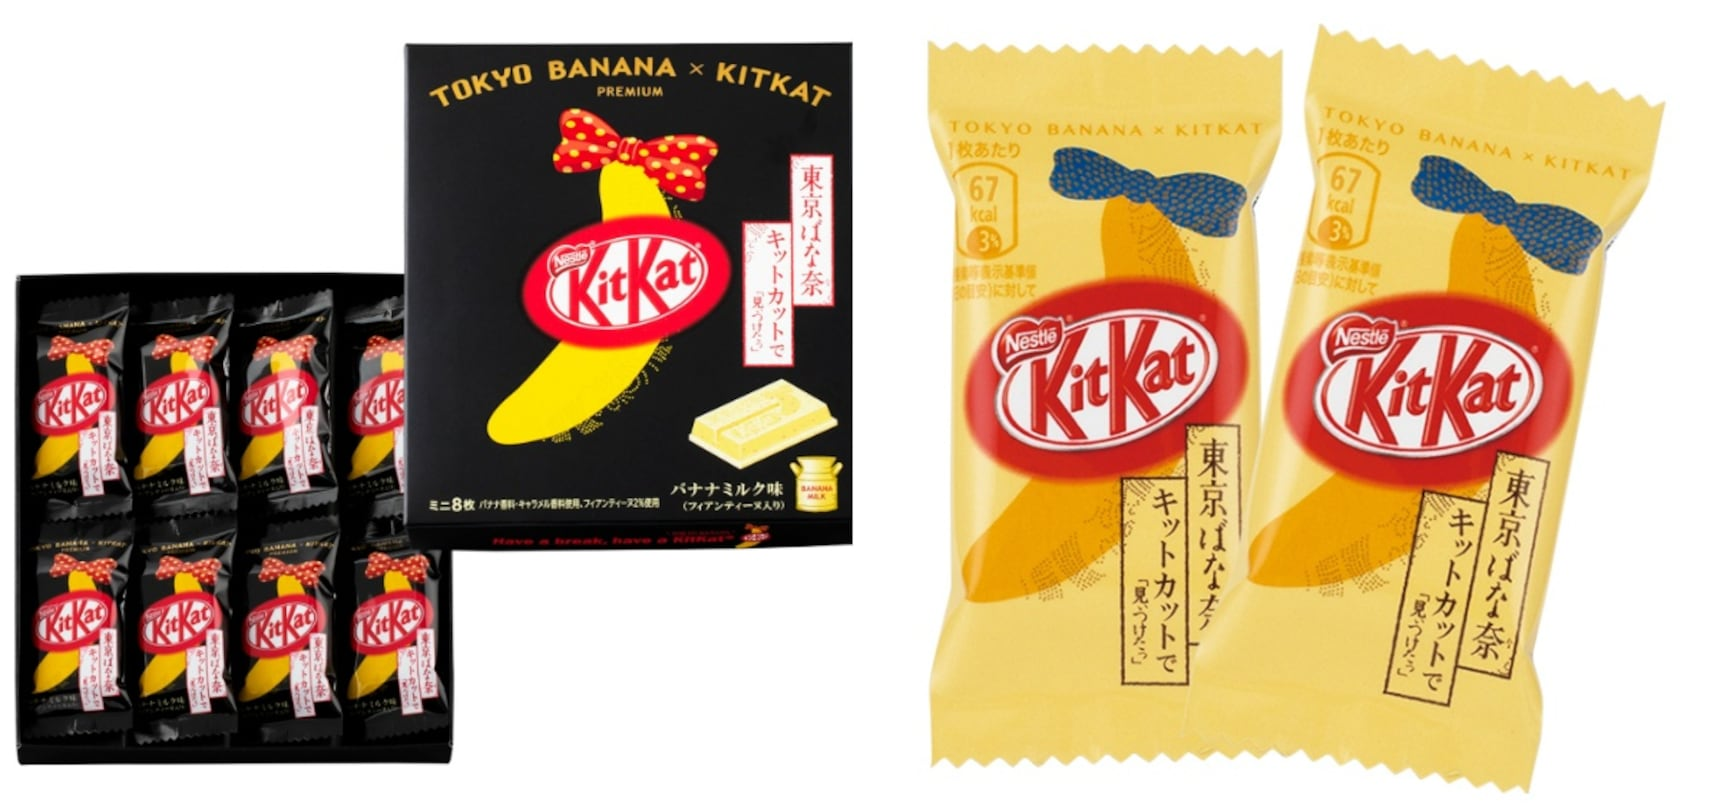 Nestlé's New Twist on the Tokyo Banana Kit Kat